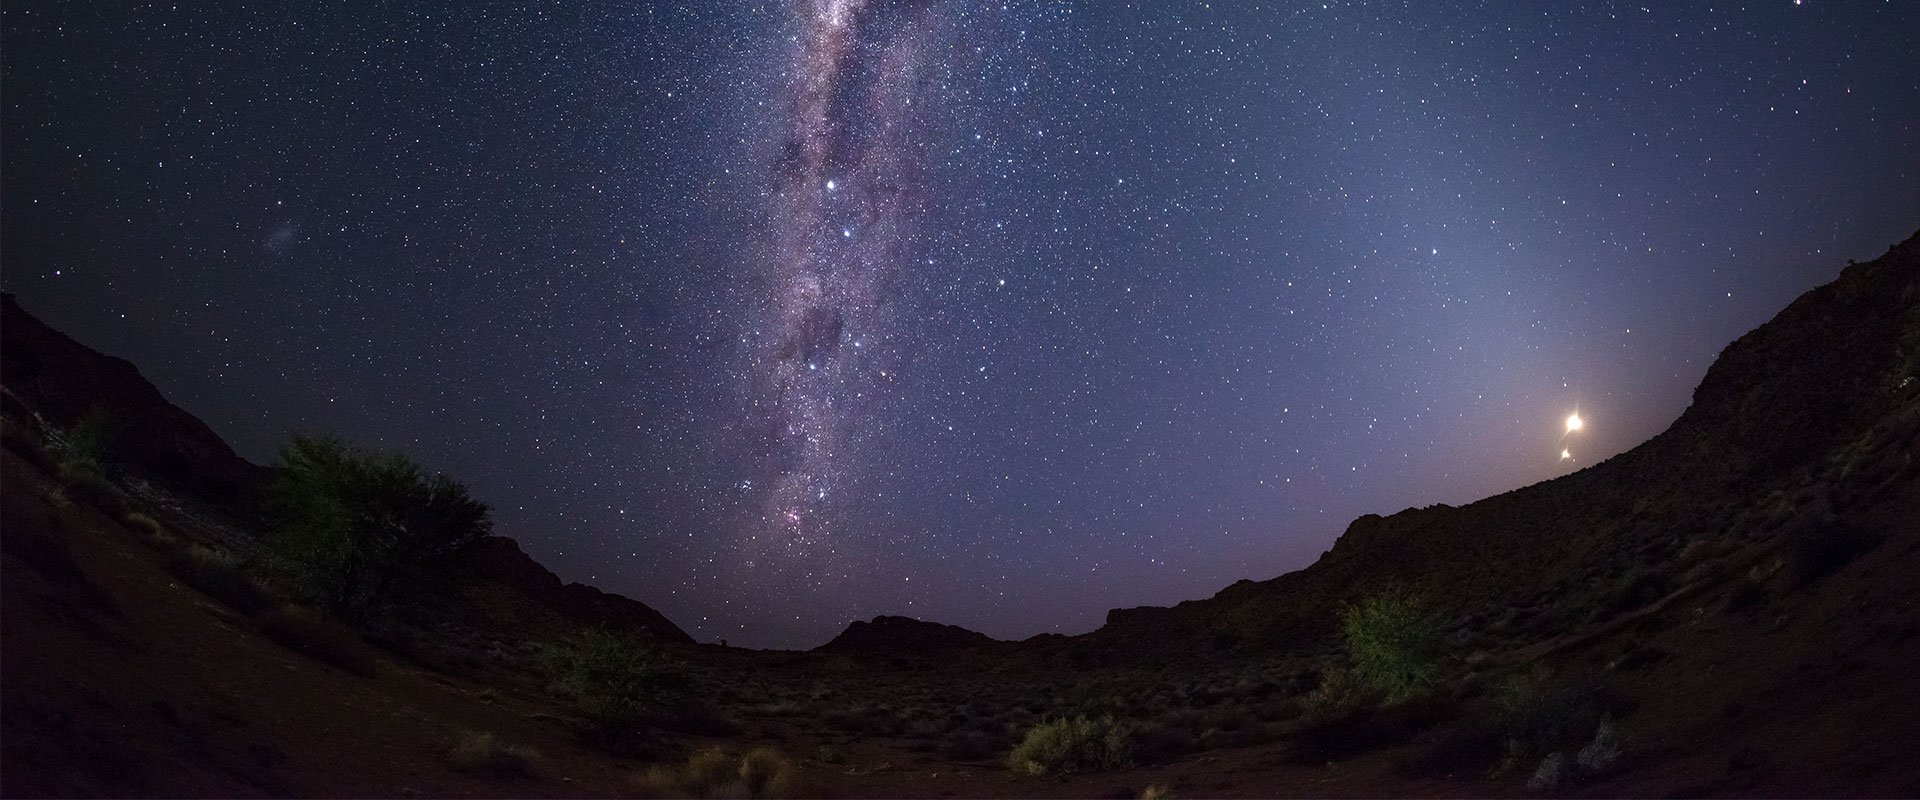 Be astounded by the African starscape